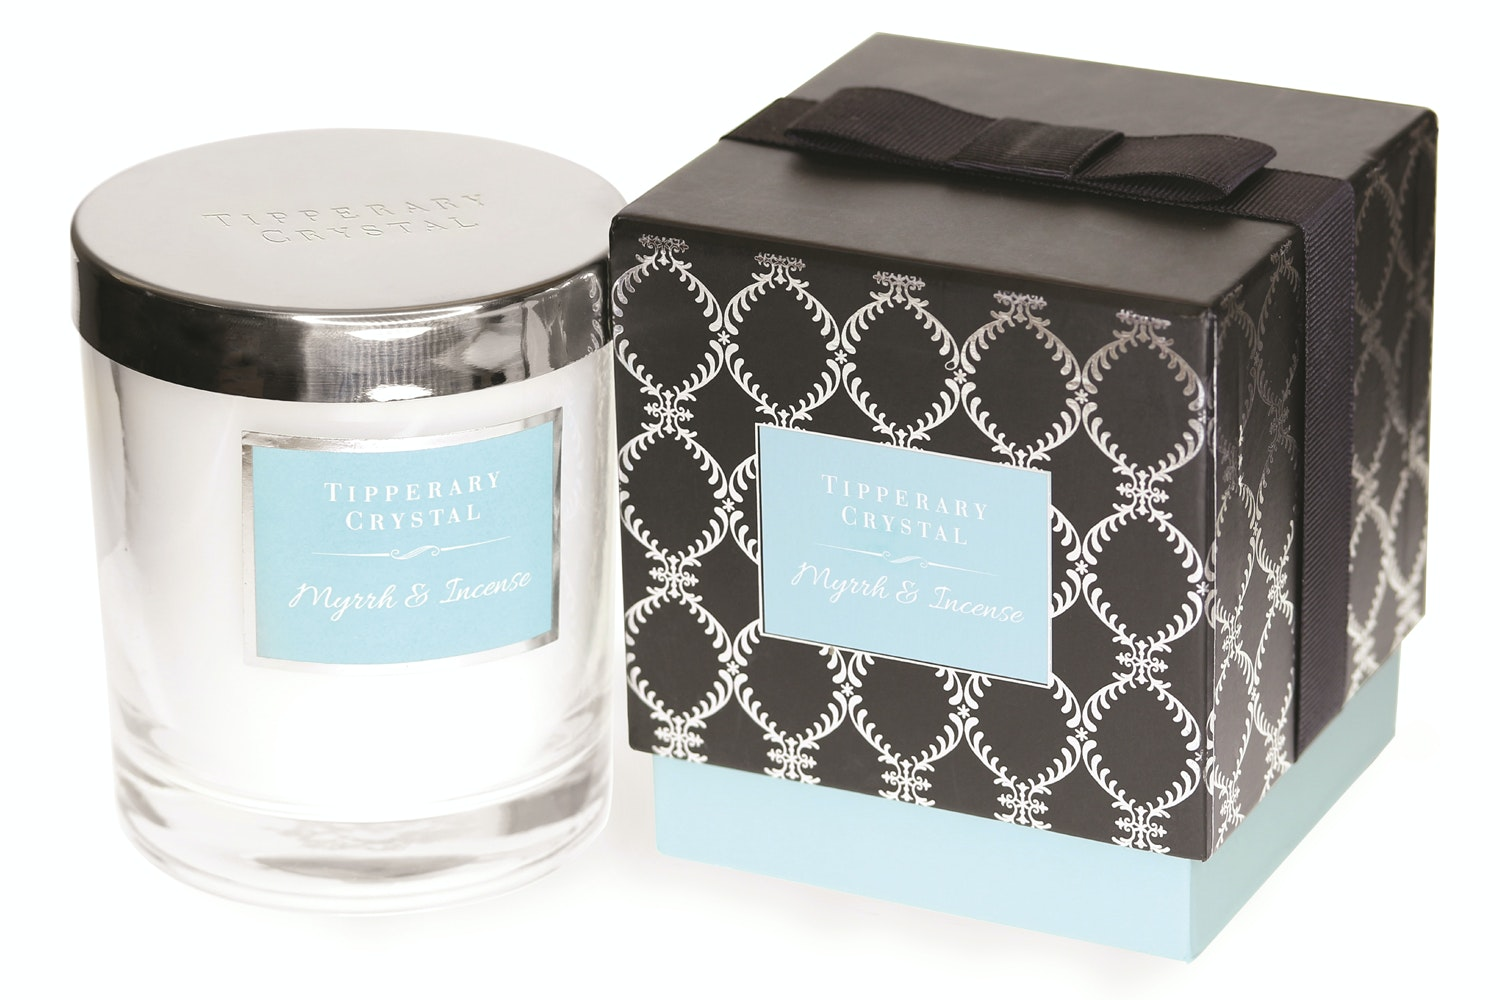 Tipperary Crystal Luxury Candle | Myrrh & Incense